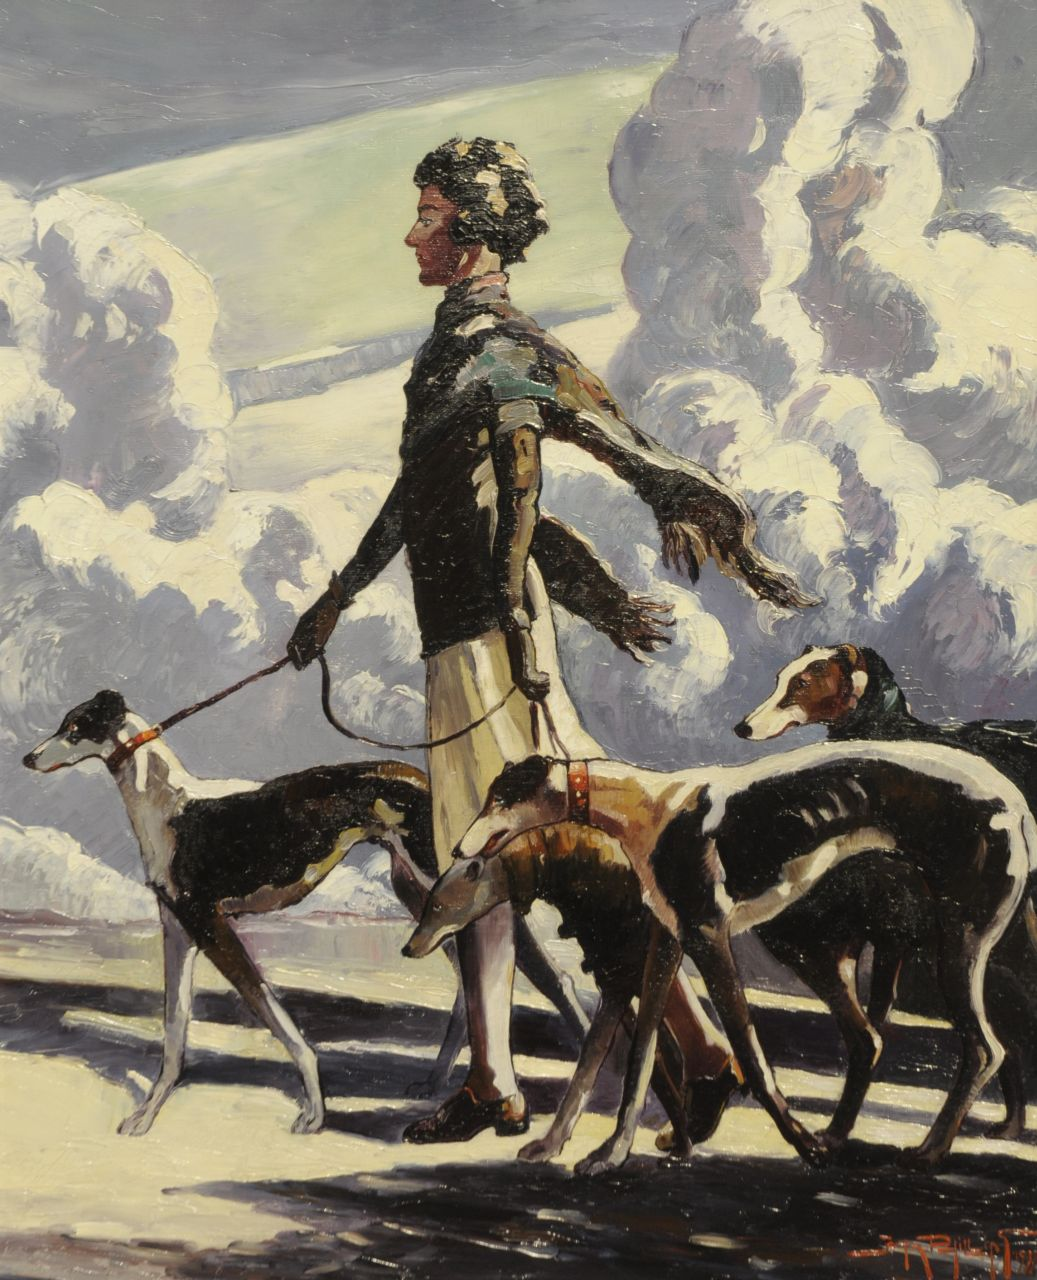 Phillips J.  | John Phillips, Strolling with the dogs, oil on canvas 50.1 x 40.2 cm, signed l.r. and dated 1939